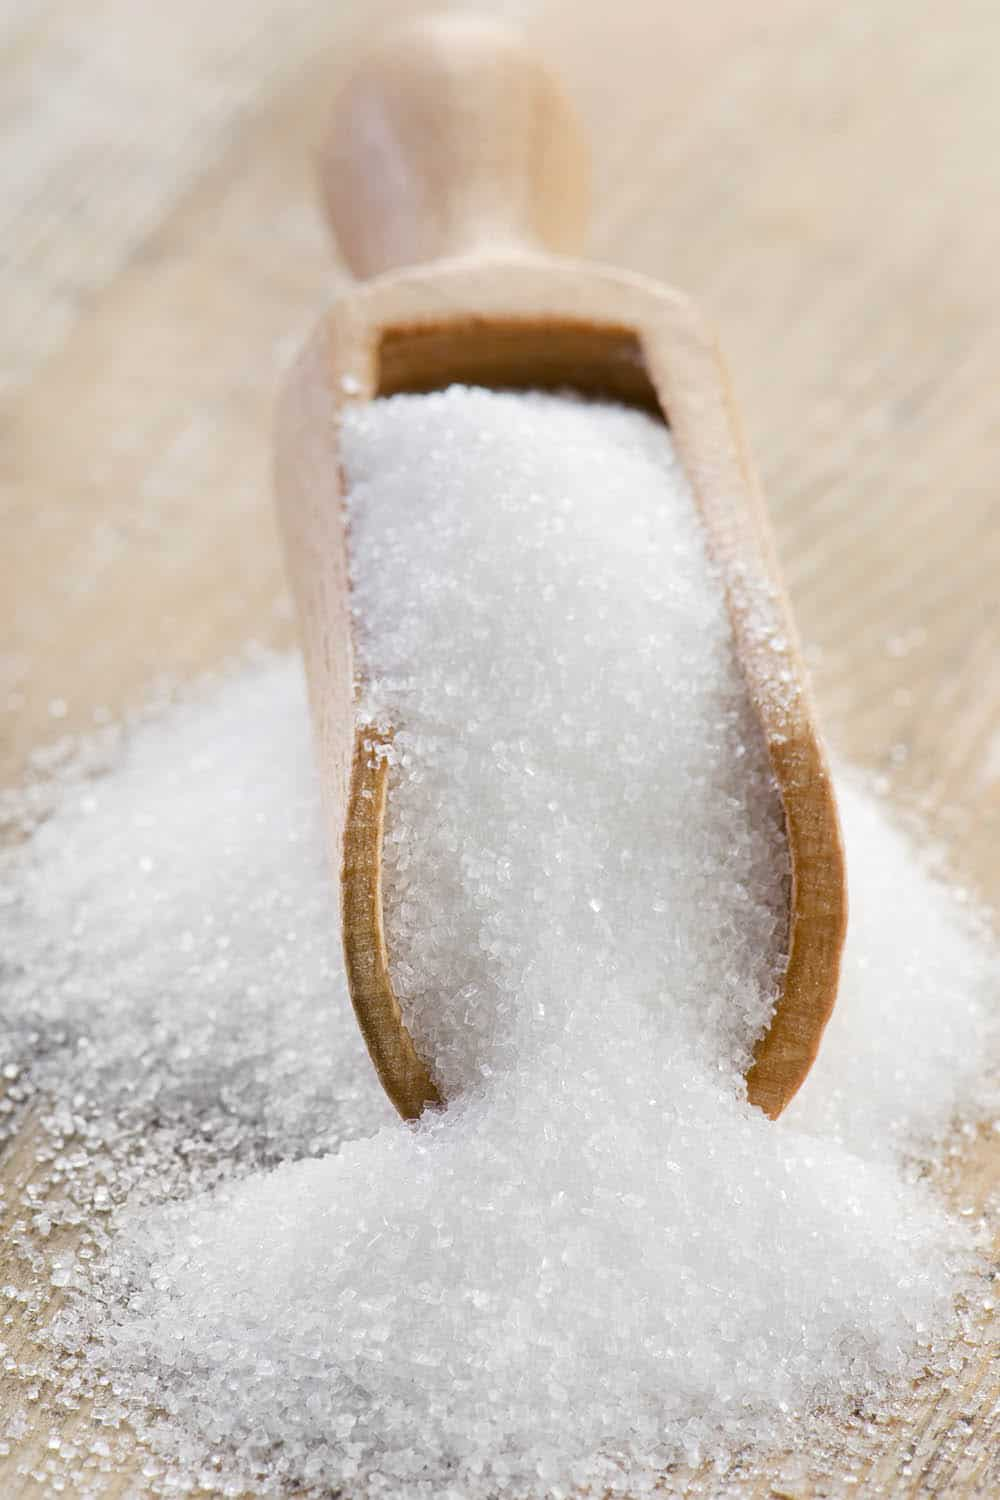 sugar to help stop the chili pepper burn